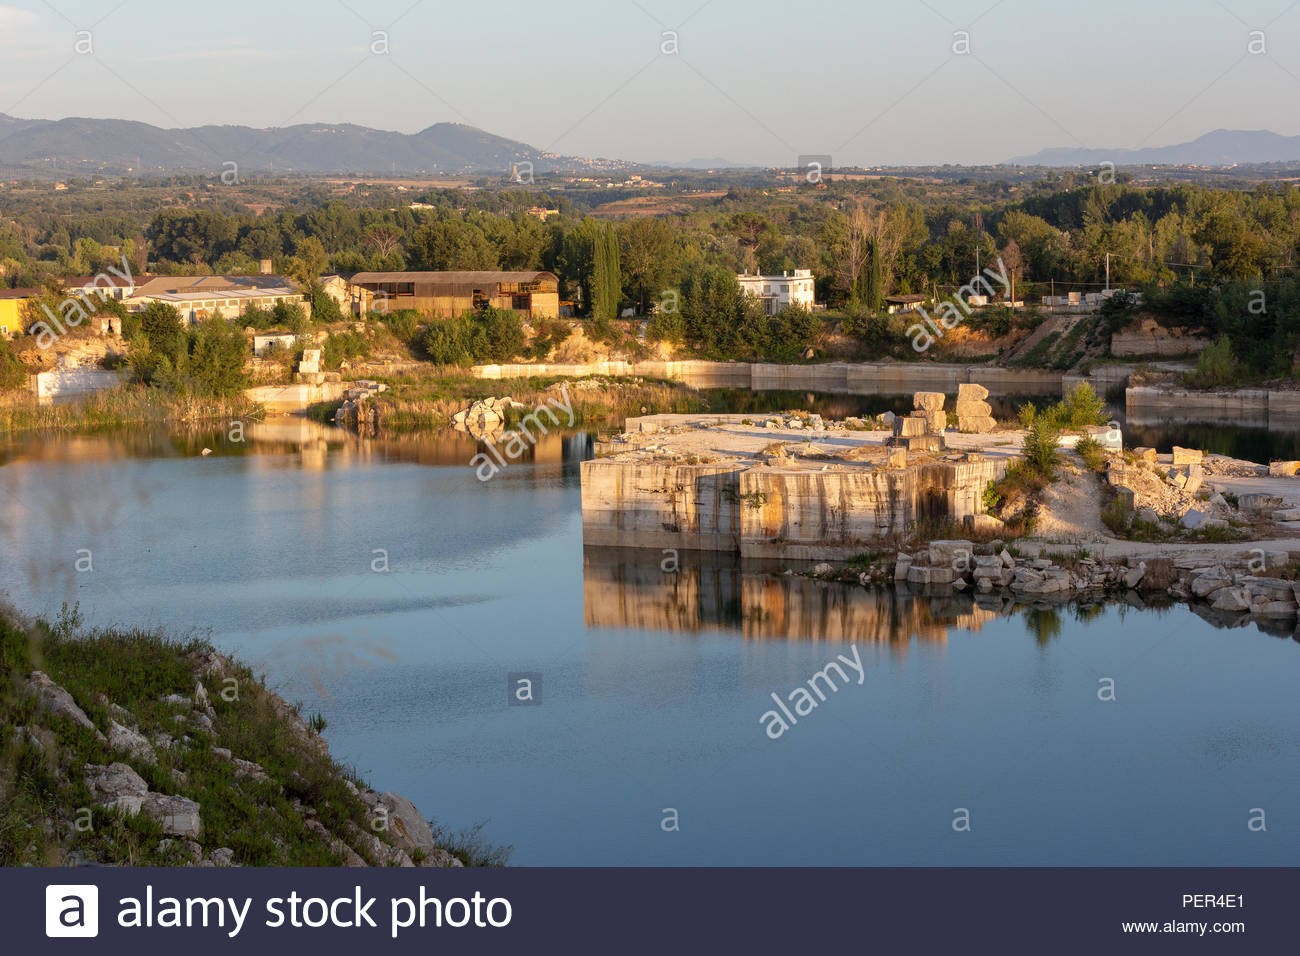 Concrete Island In Bagni Di Tivoli Italy Stock Photo 215638025 Alamy